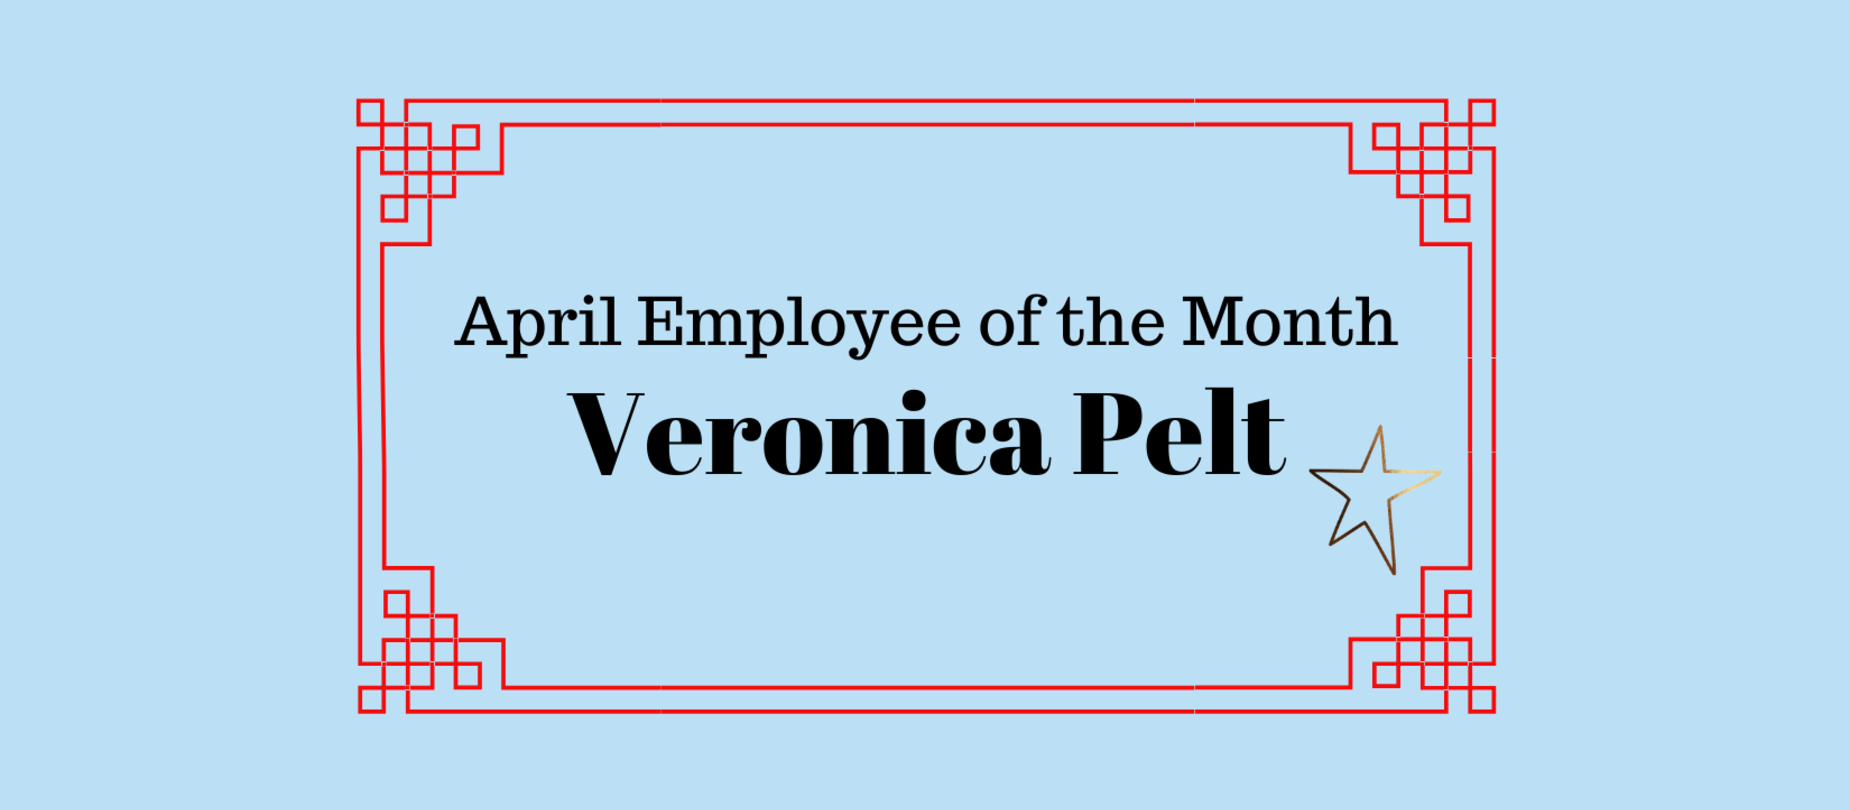 April Employee of the Month